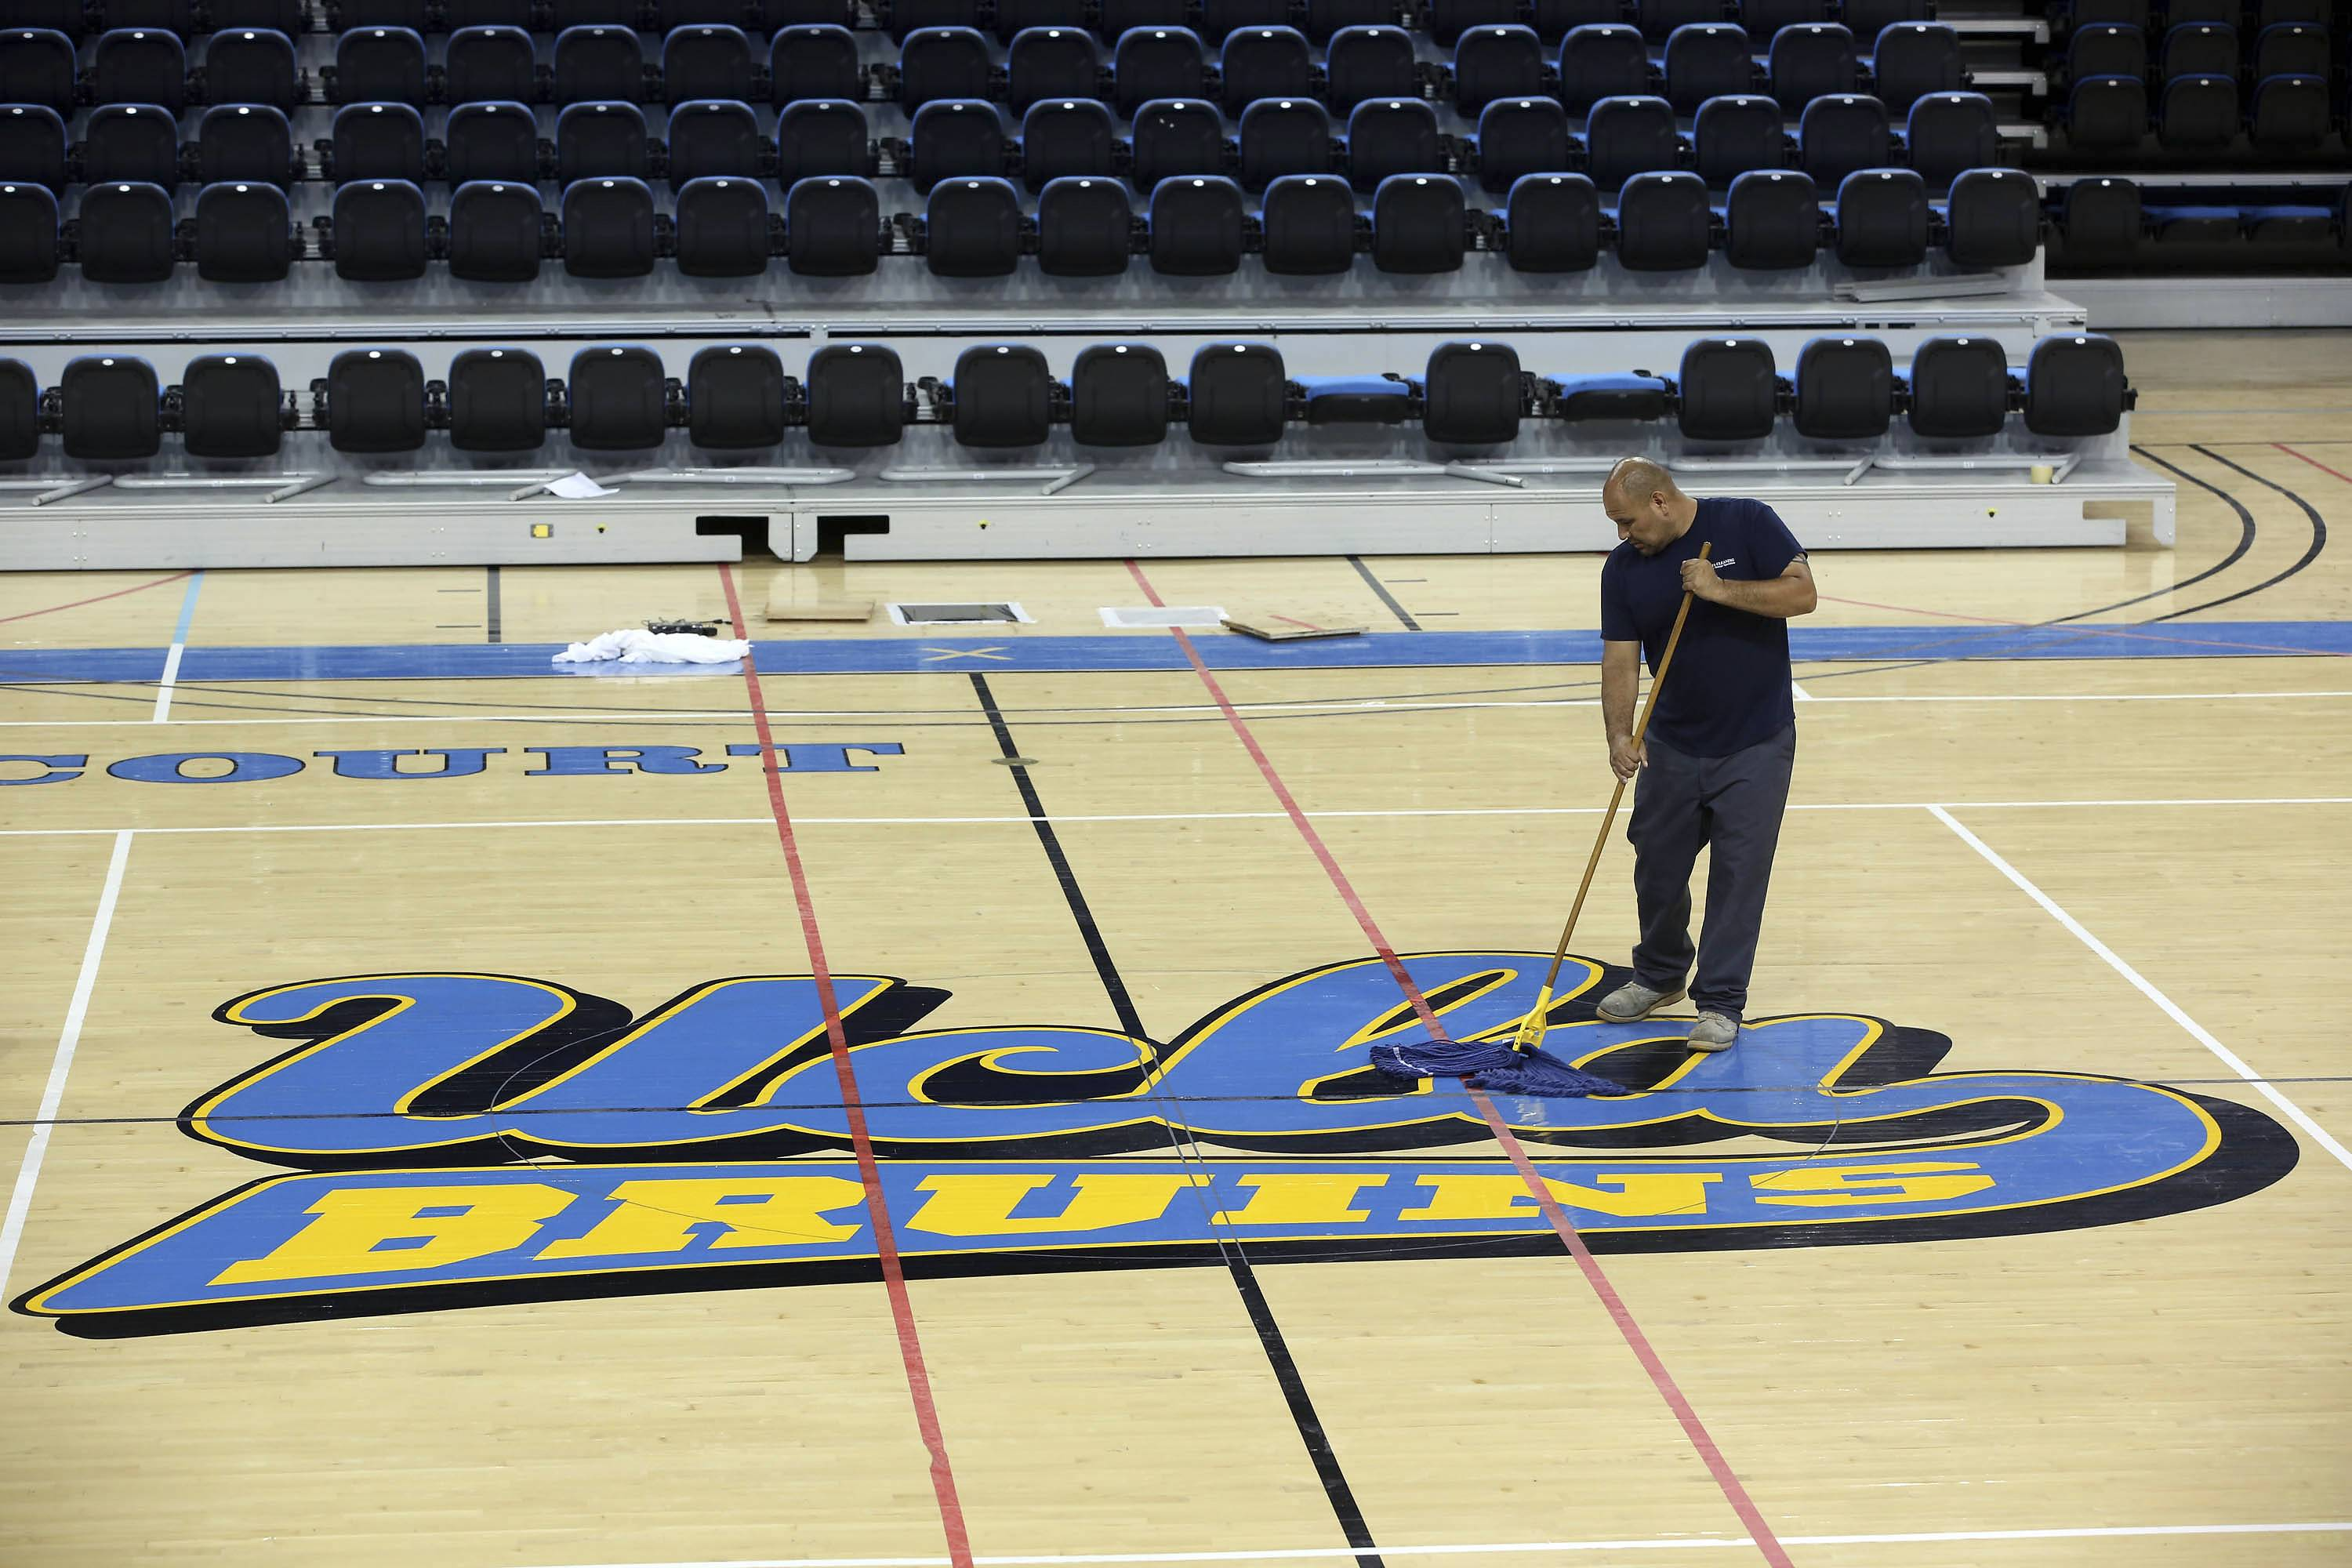 Worker Ruben Monter mops up the floor at Pauley Pavillion Wednesday July 30, 2014 in Los Angeles. A ruptured 93-year-old water main on Tuesday left the UCLA campus awash in 8 million gallons of water in the middle of California's worst drought in decades, stranding people in parking garages and flooding the school's storied basketball court less than two years after a major renovation.